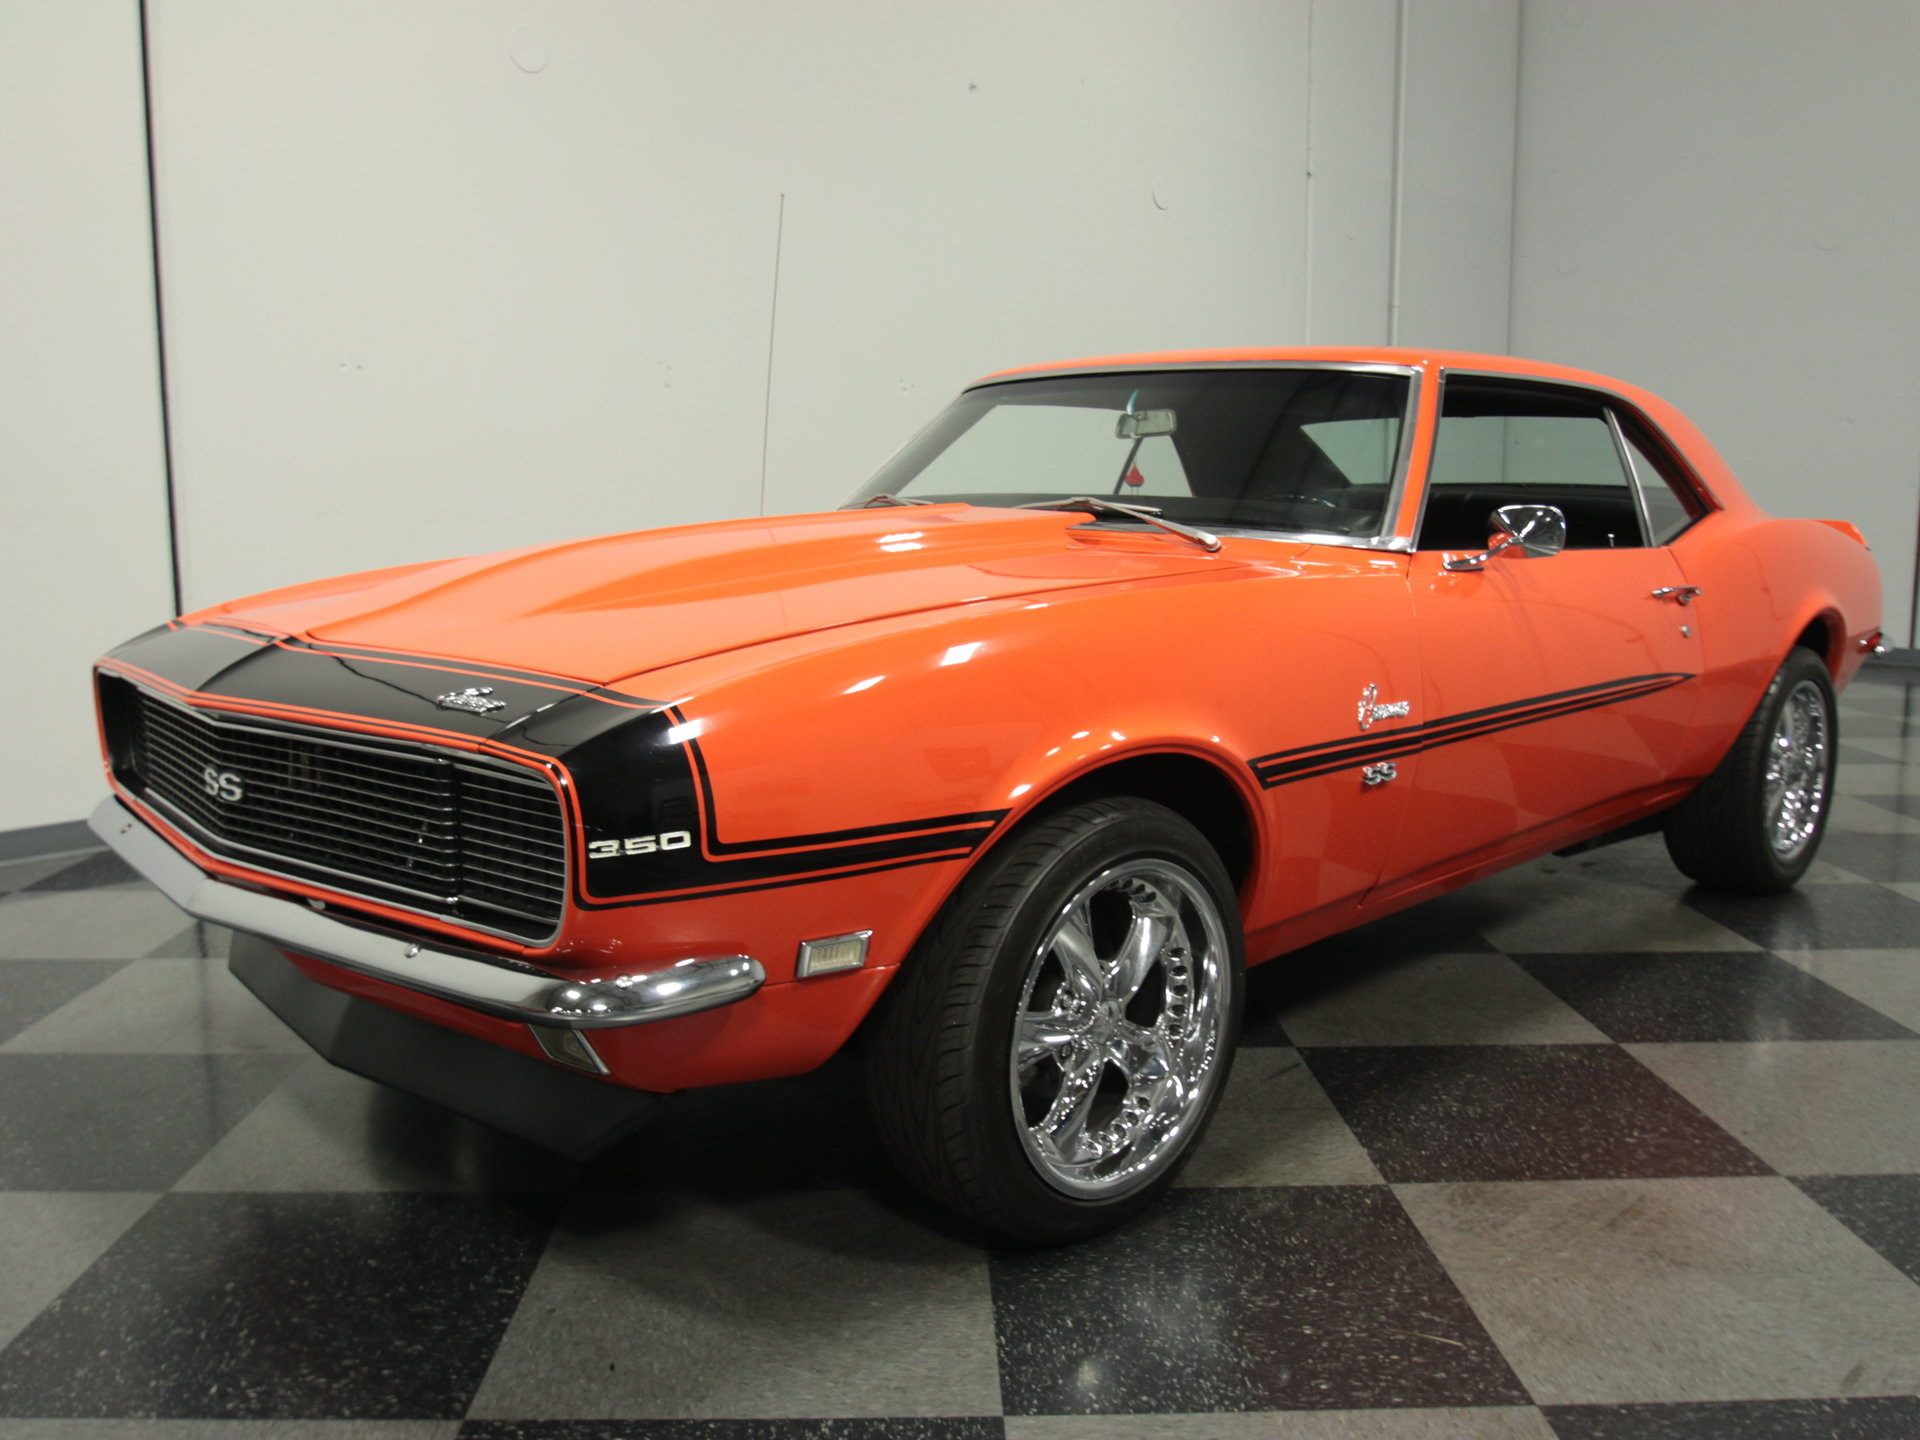 1968 Chevrolet Camaro Streetside Classics The Nation S Trusted Classic Car Consignment Dealer